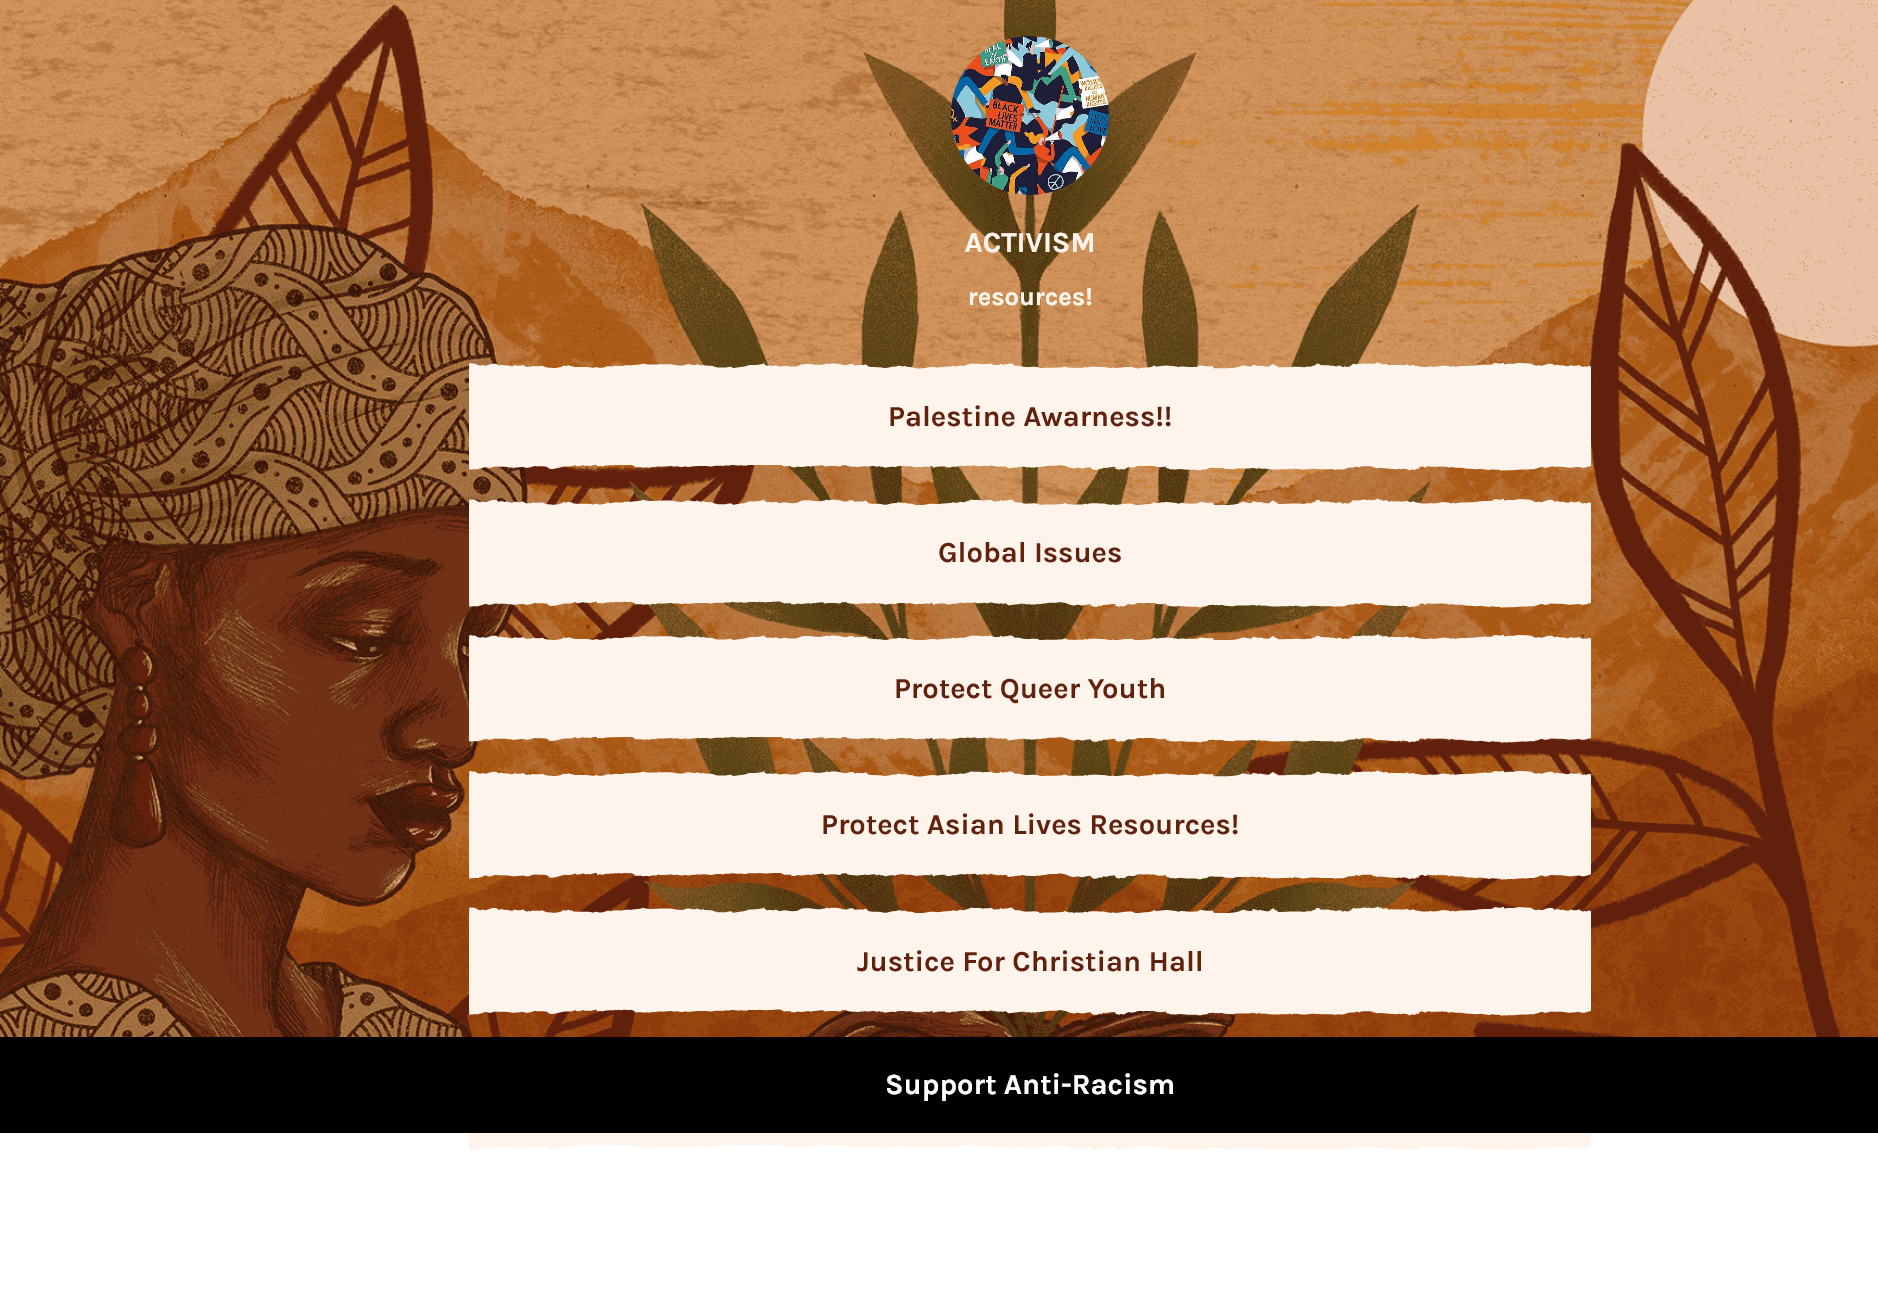 Set of boxes with links to resources from LinkTree, brown decorative art background with silhouette of woman of color.